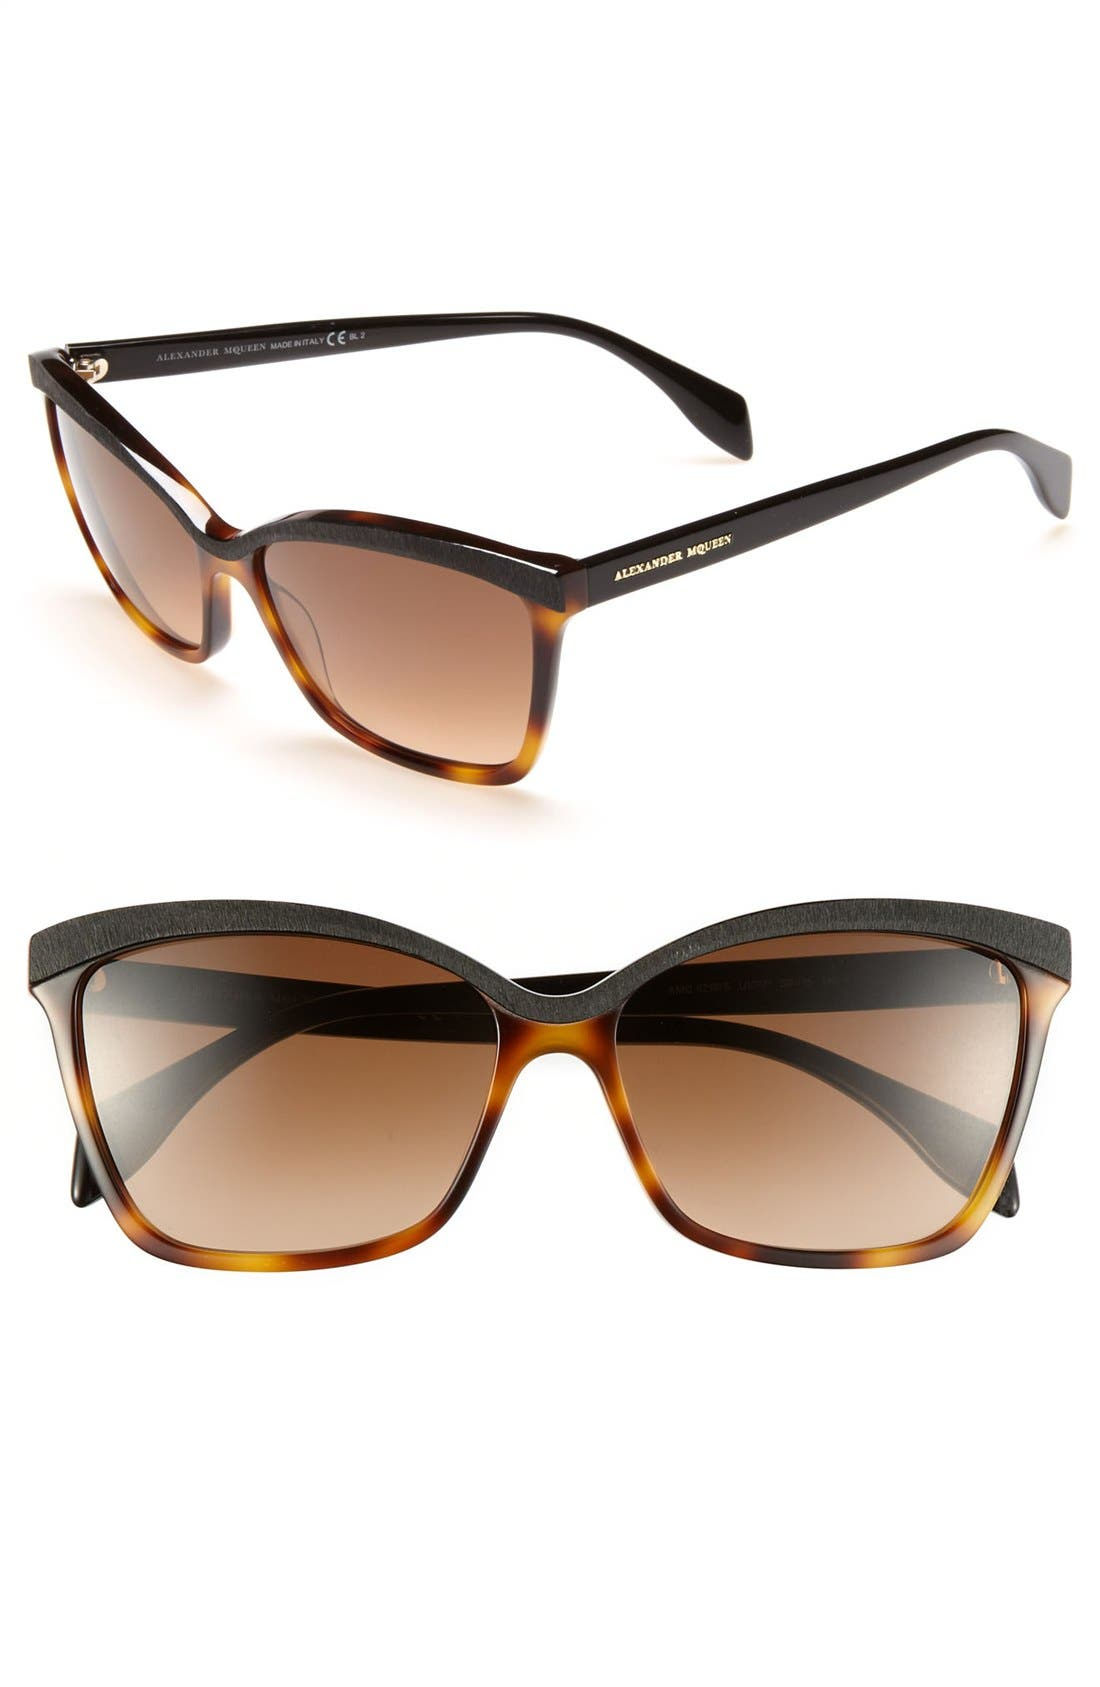 Alternate Image 1 Selected - Alexander McQueen 58mm 'Retro' Sunglasses